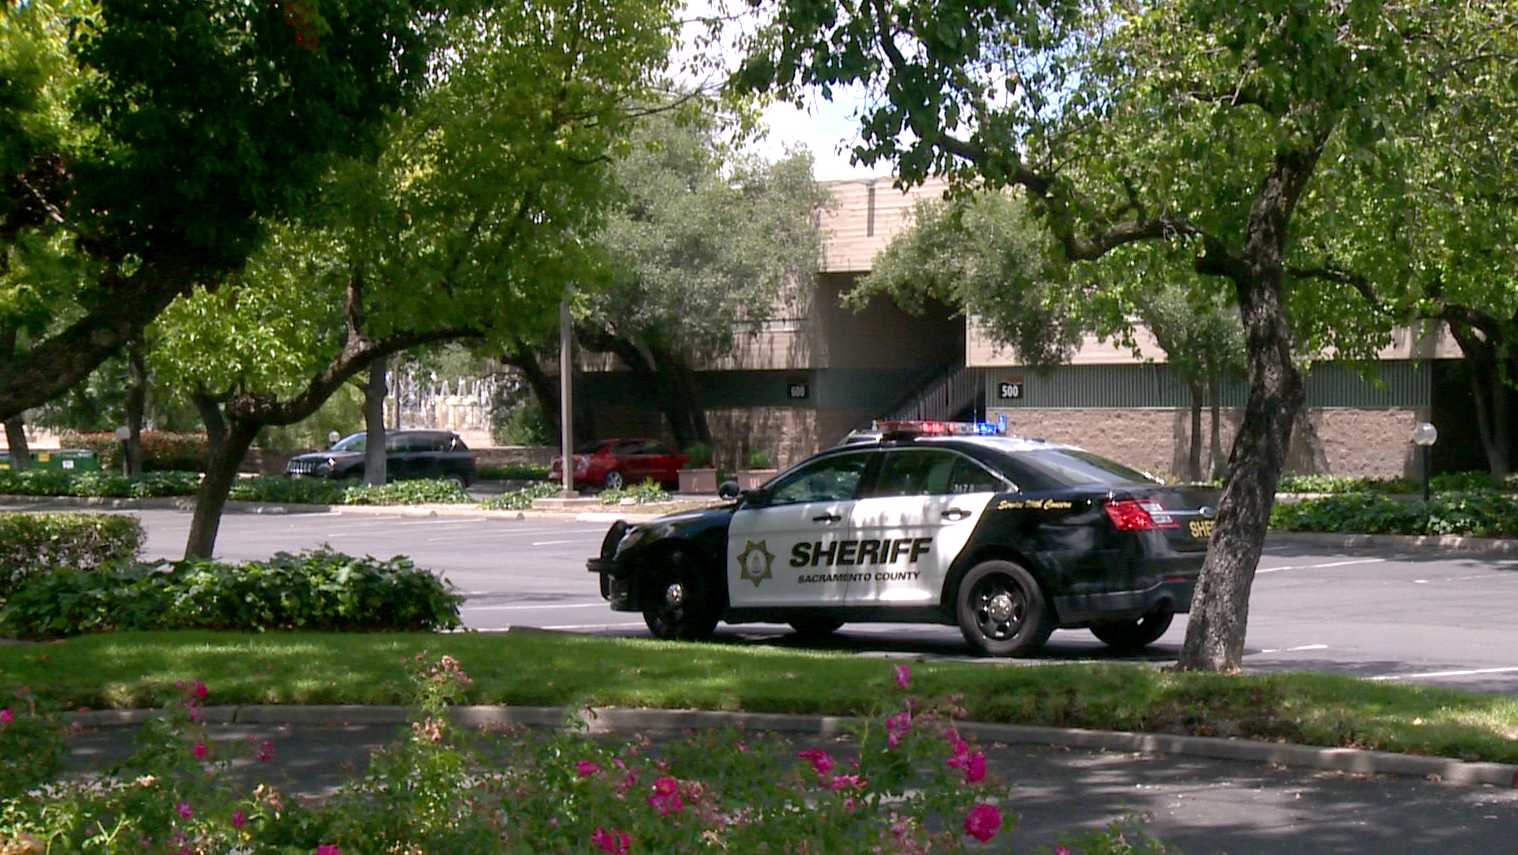 Deputies investigate after an armed man was spotted in an Arden-Arcade area business complex on Sunday, June 11, 2017, the Sacramento County Sheriff's Department said.